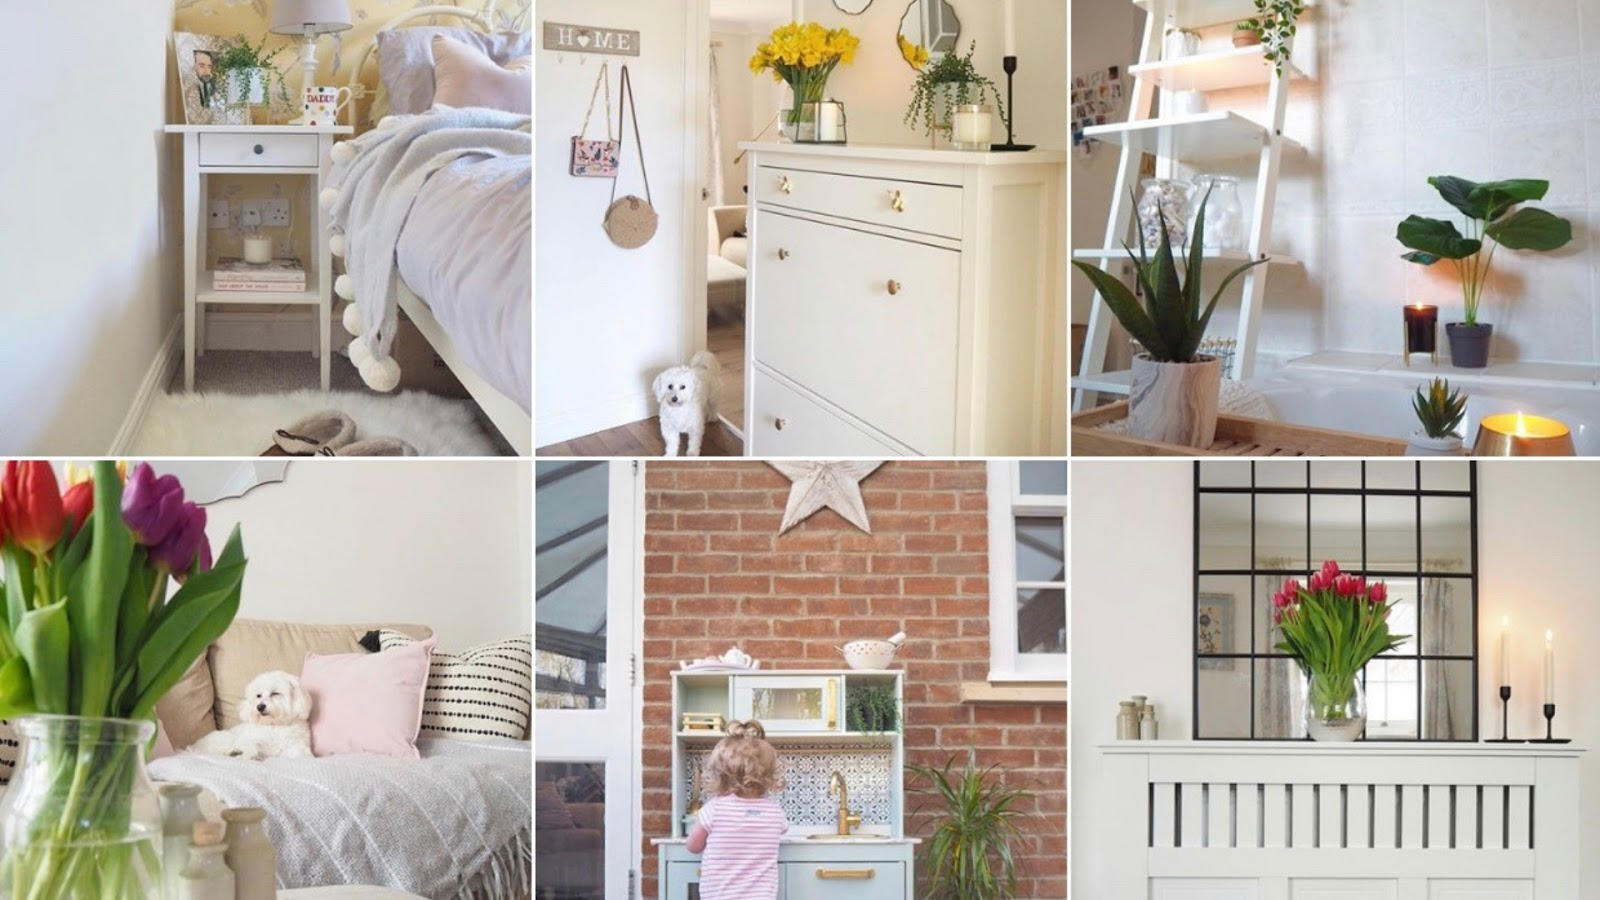 instagram and blogging tips for interior design bloggers and photographers taking photos of their own homes